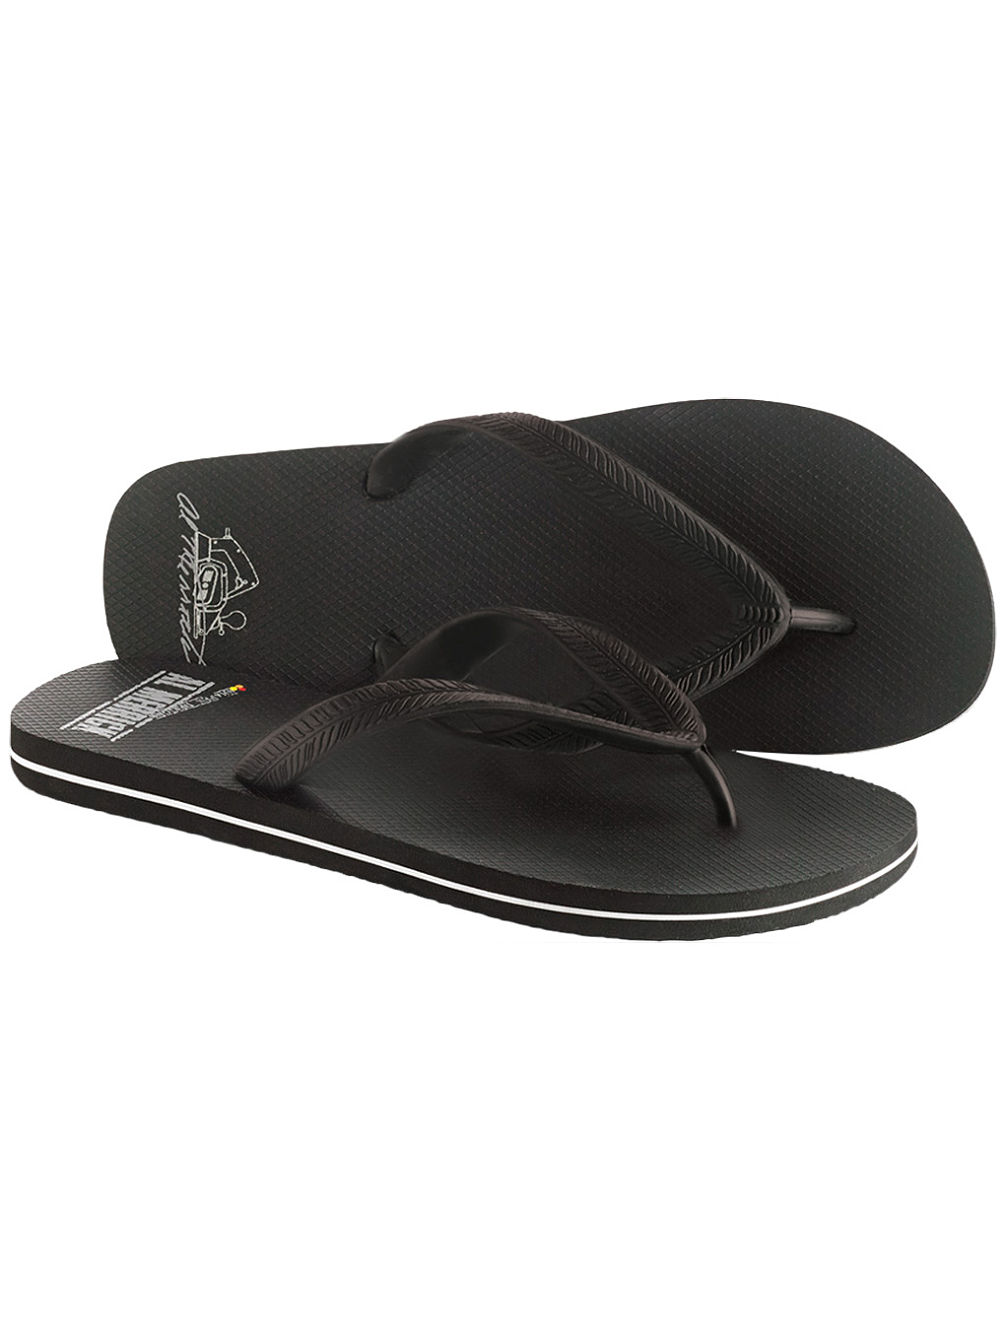 freewaters-channel-islands-friday-sandals